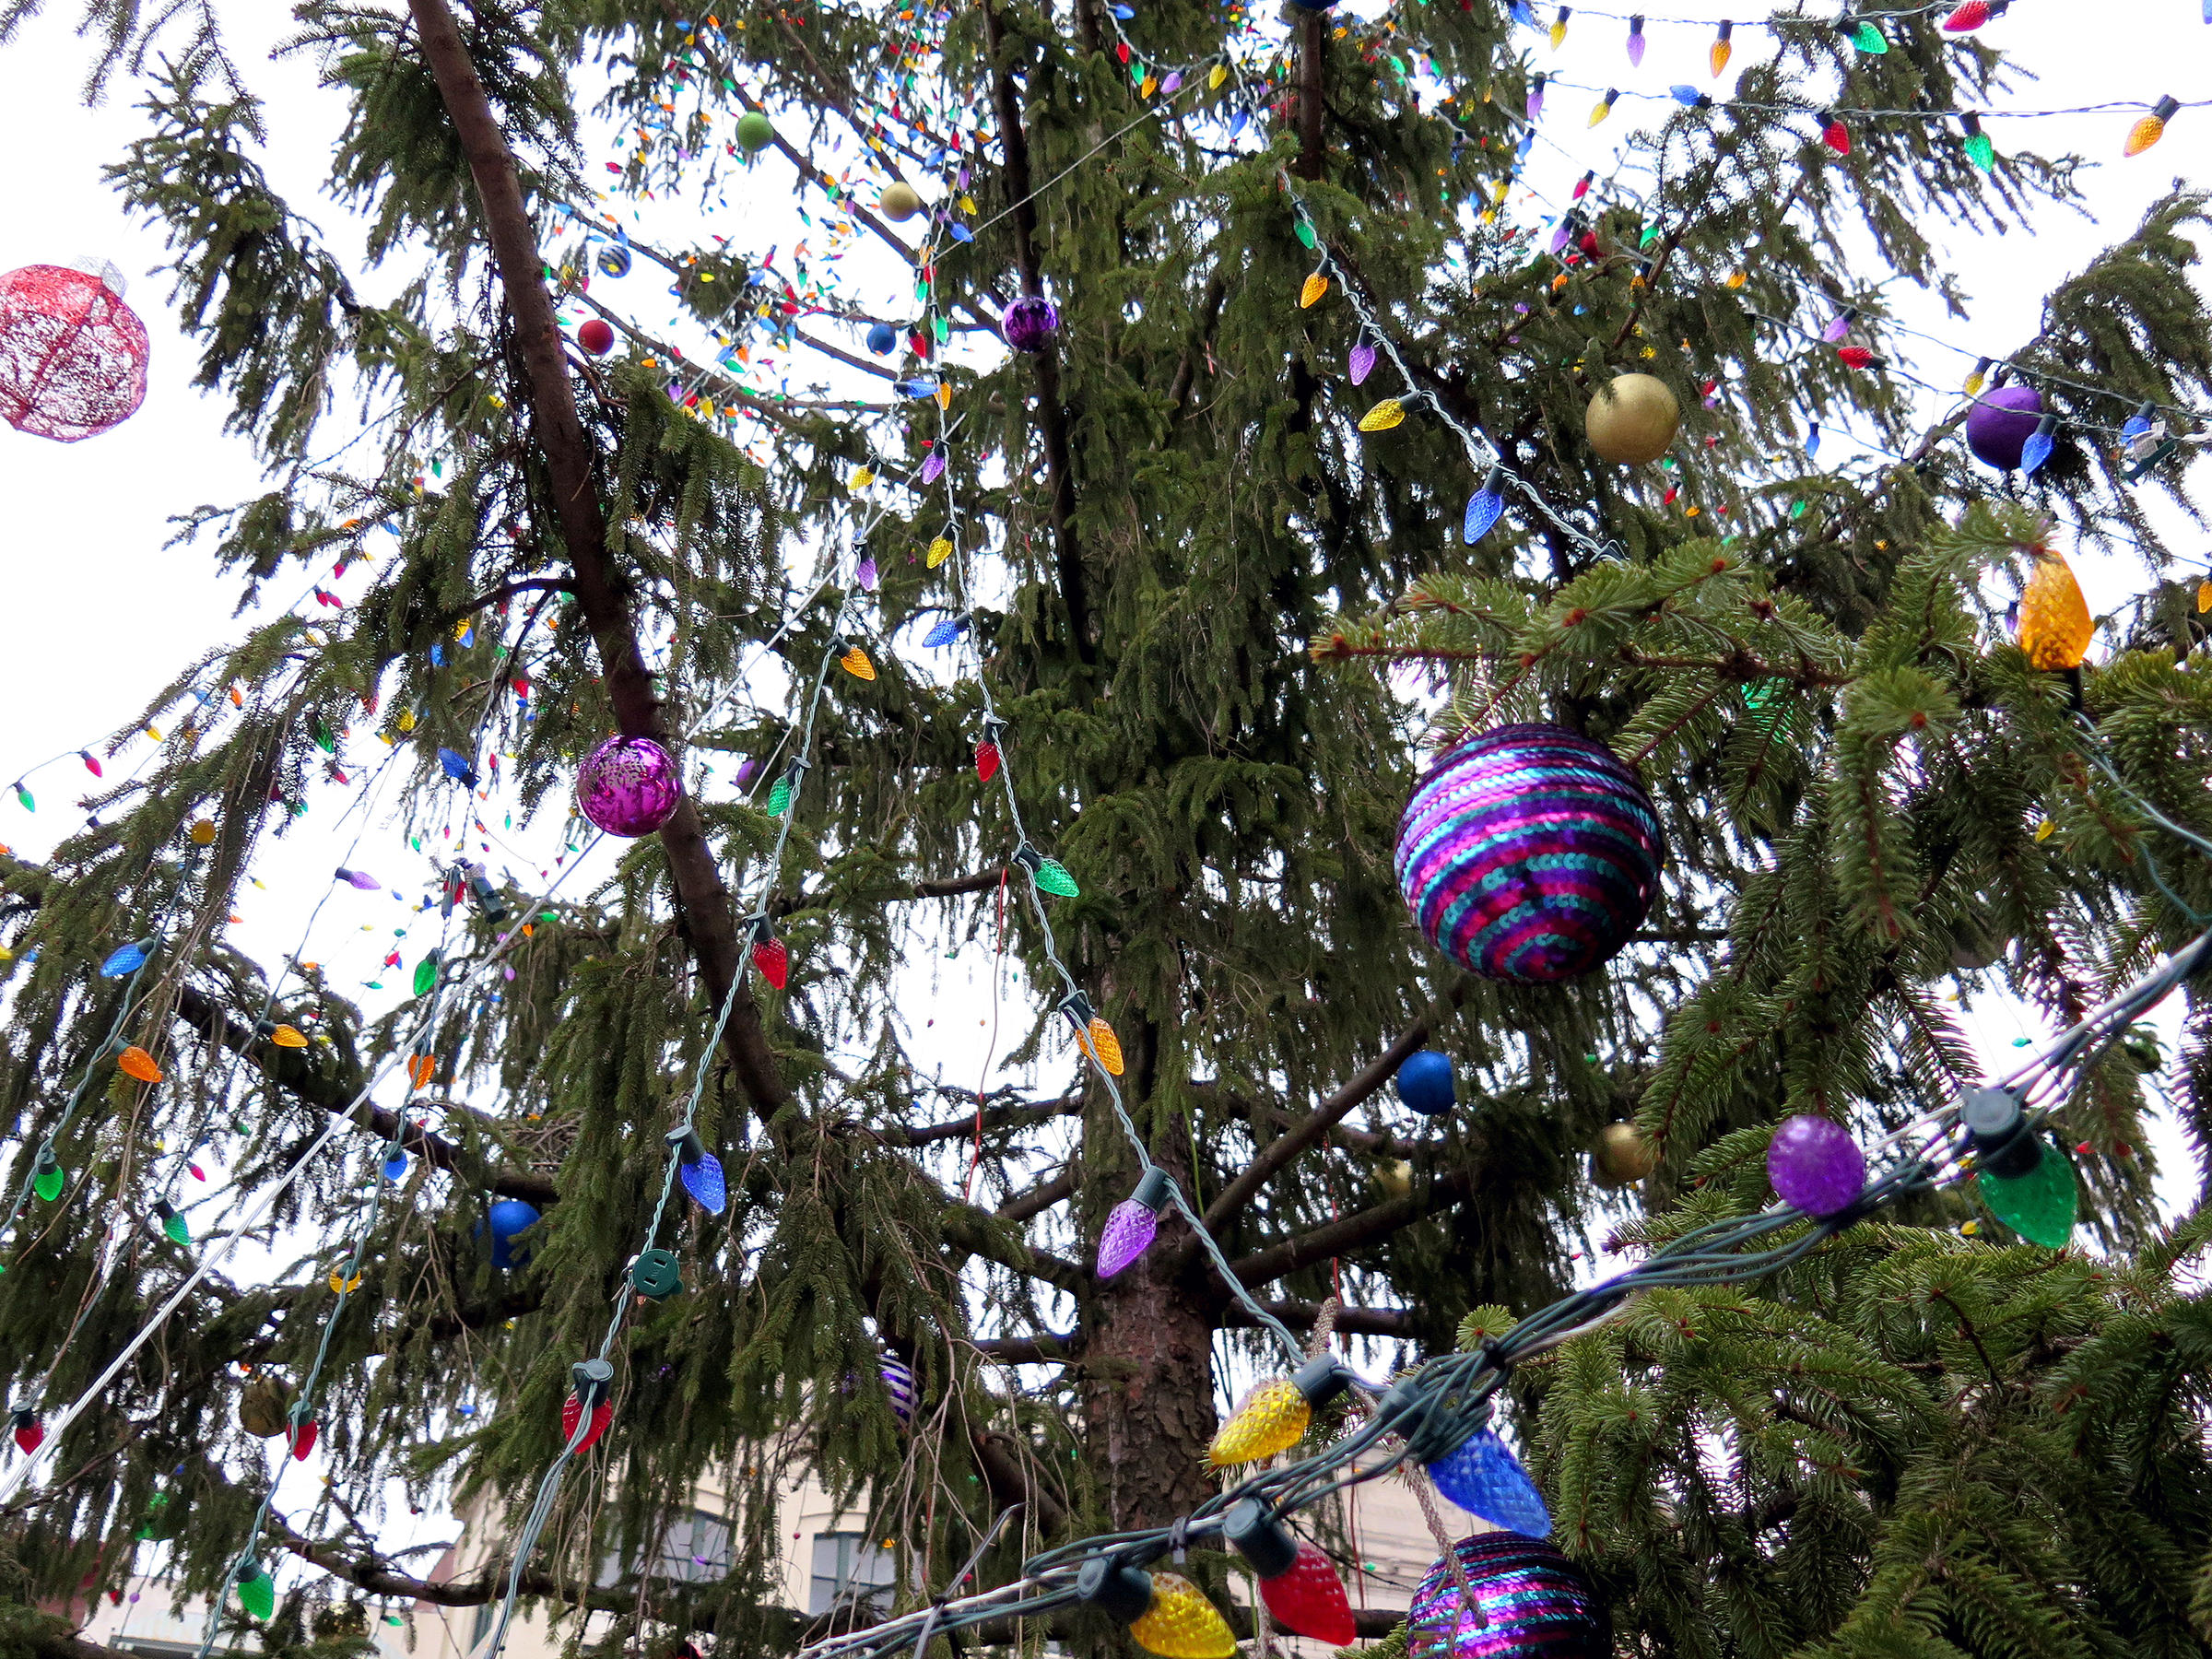 Towns that have great christmas decorations read - Instead Of Turning The Tree Into Mulch The Town Decorated It And Ushered It In With A Special Town Reading Of A Charlie Brown Christmas